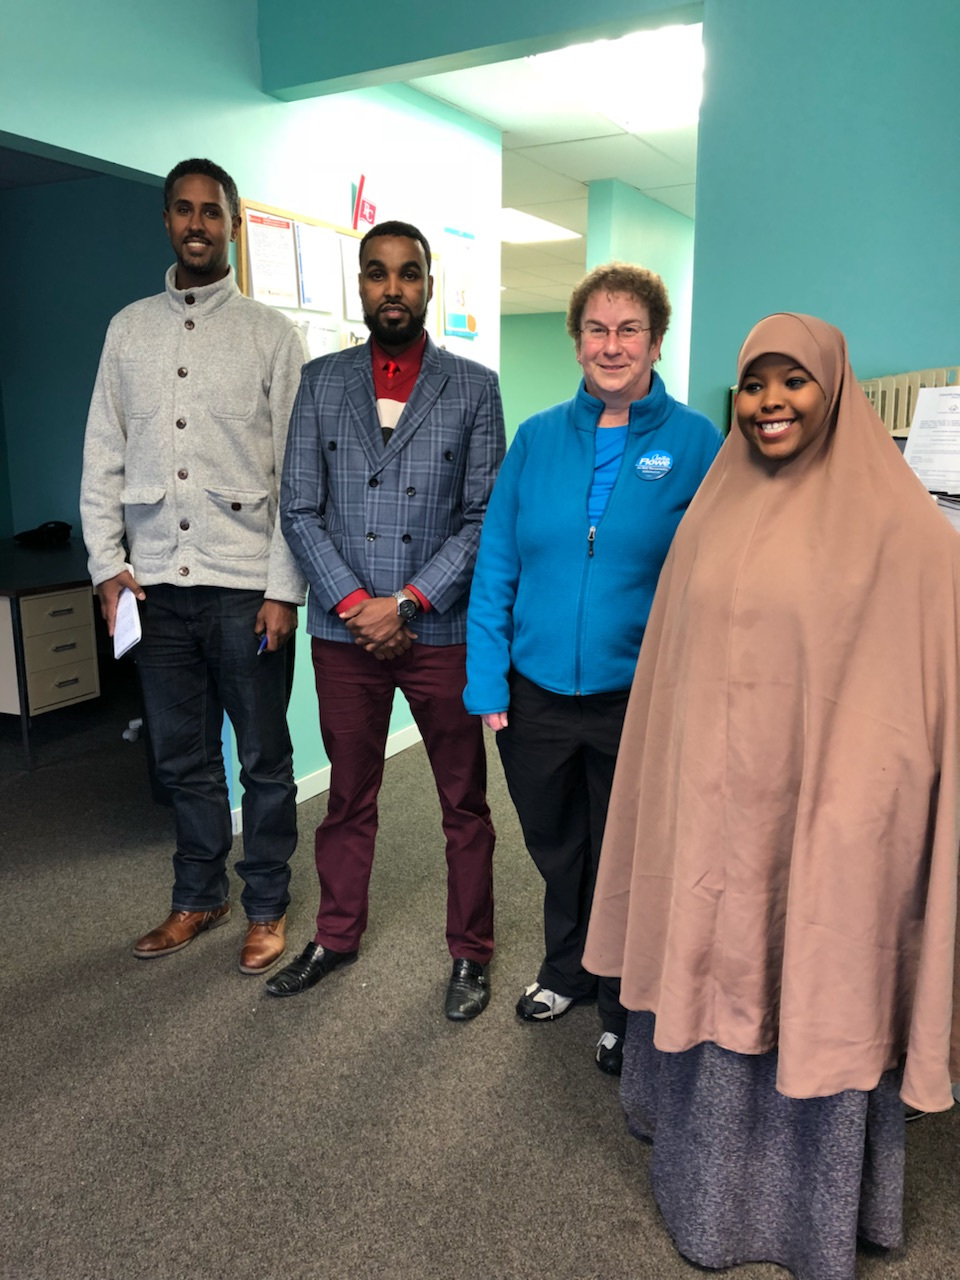 ESPN International - Coverage of Willmar High School football star Hamza Mohamed brought ESPN International to Willmar Saturday! Reporter Tesfaye Negussie interviewed us as part of the background about Willmar.  (left to right: Tesfaye, Abdirahman, Anita, Hamdi)  November 3, 2018